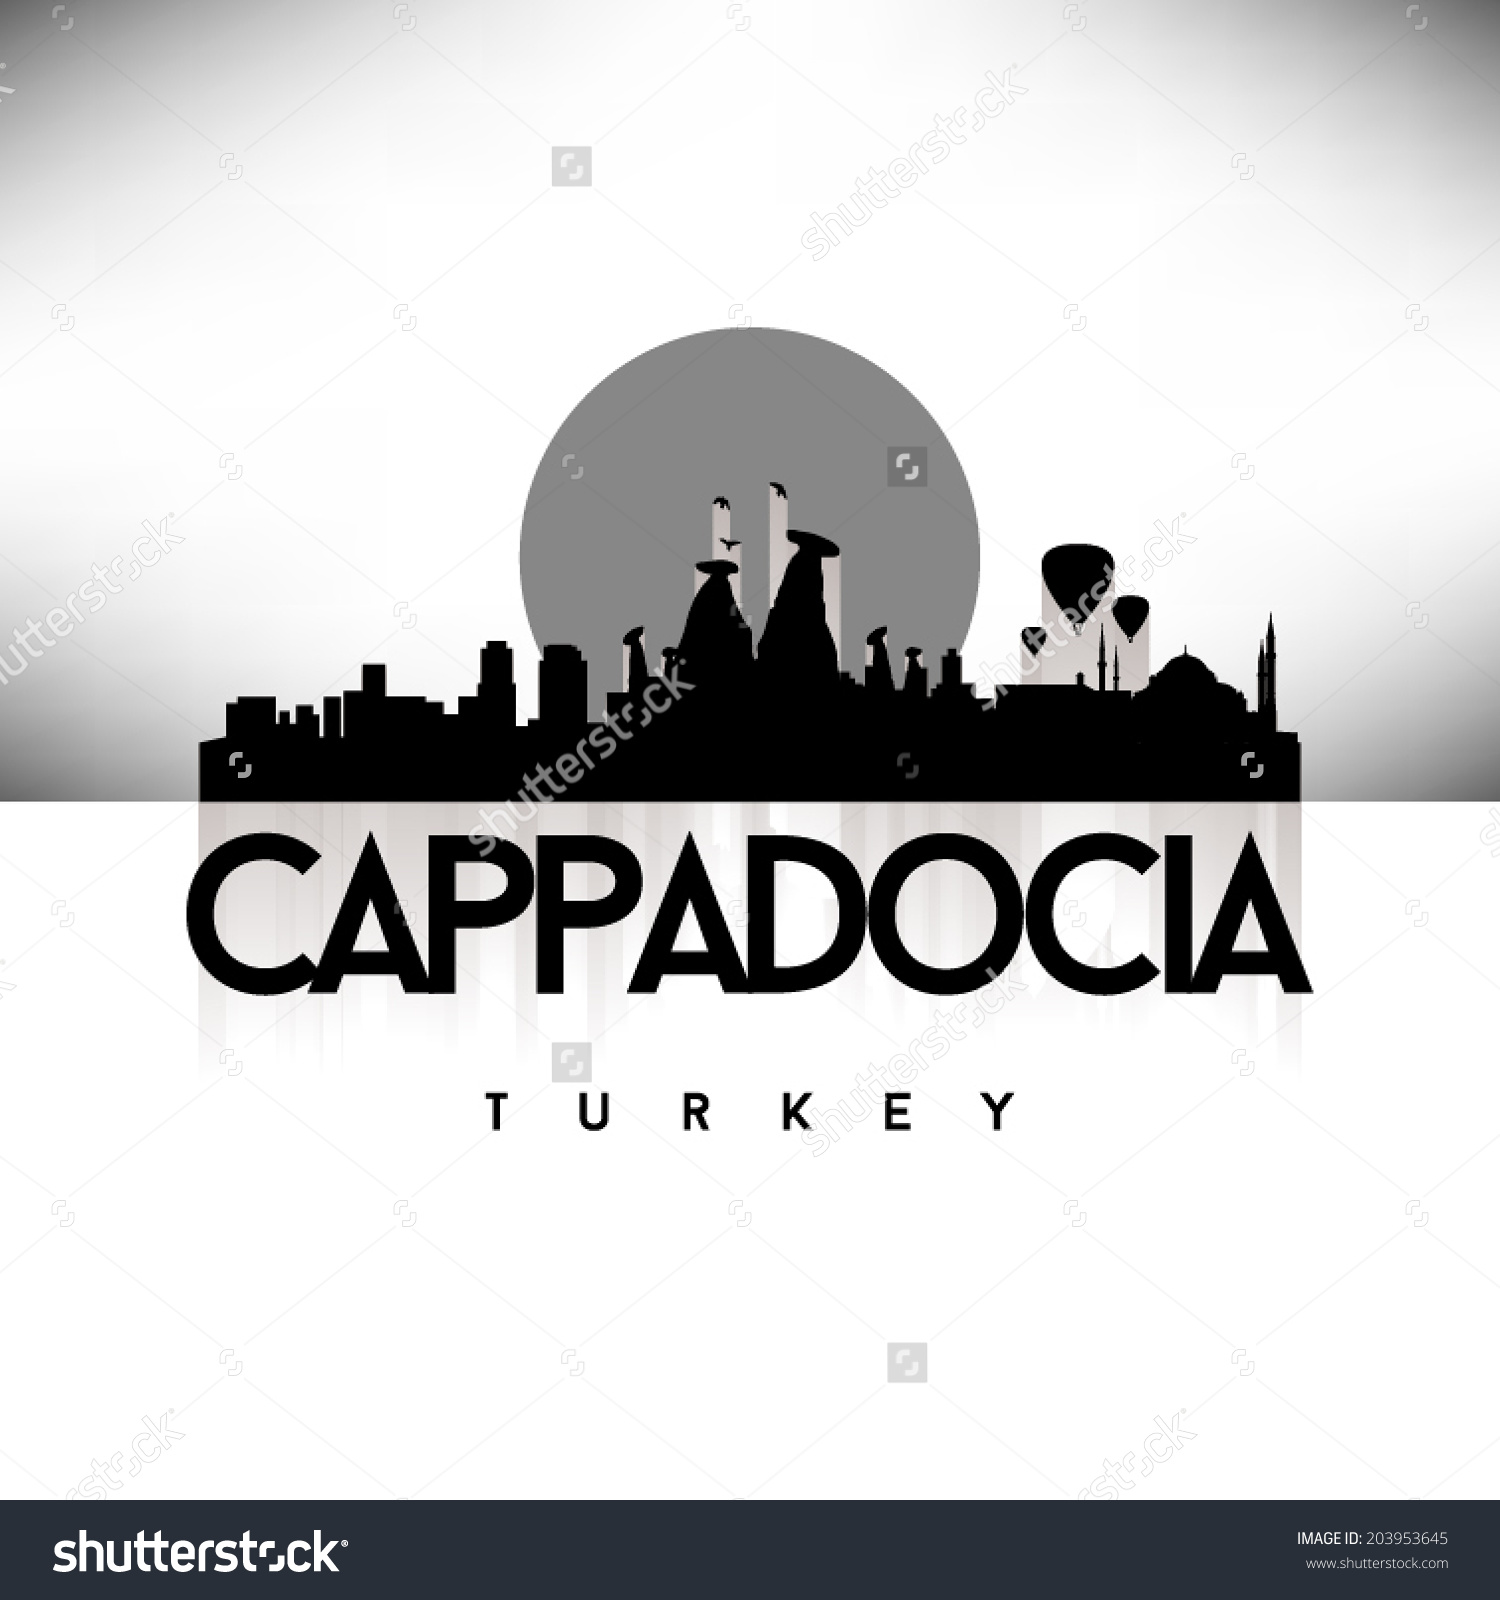 Cappadocia Turkey Skyline Silhouette Black White Stock Vector.